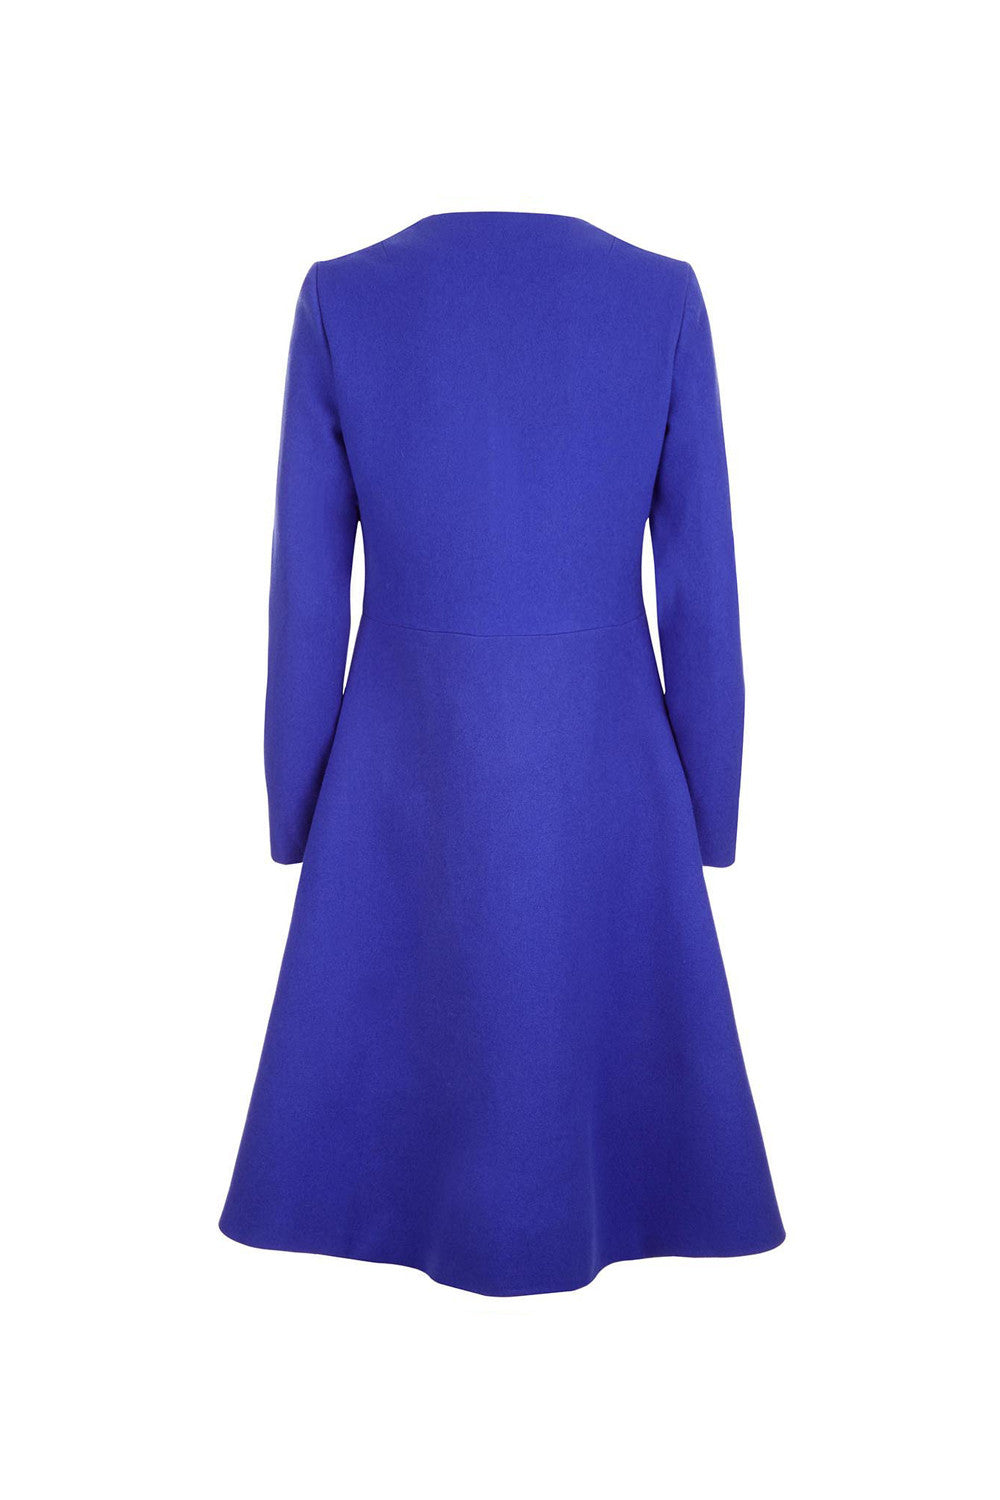 Rosalind Coat - Womenswear Outlet - Madderson London